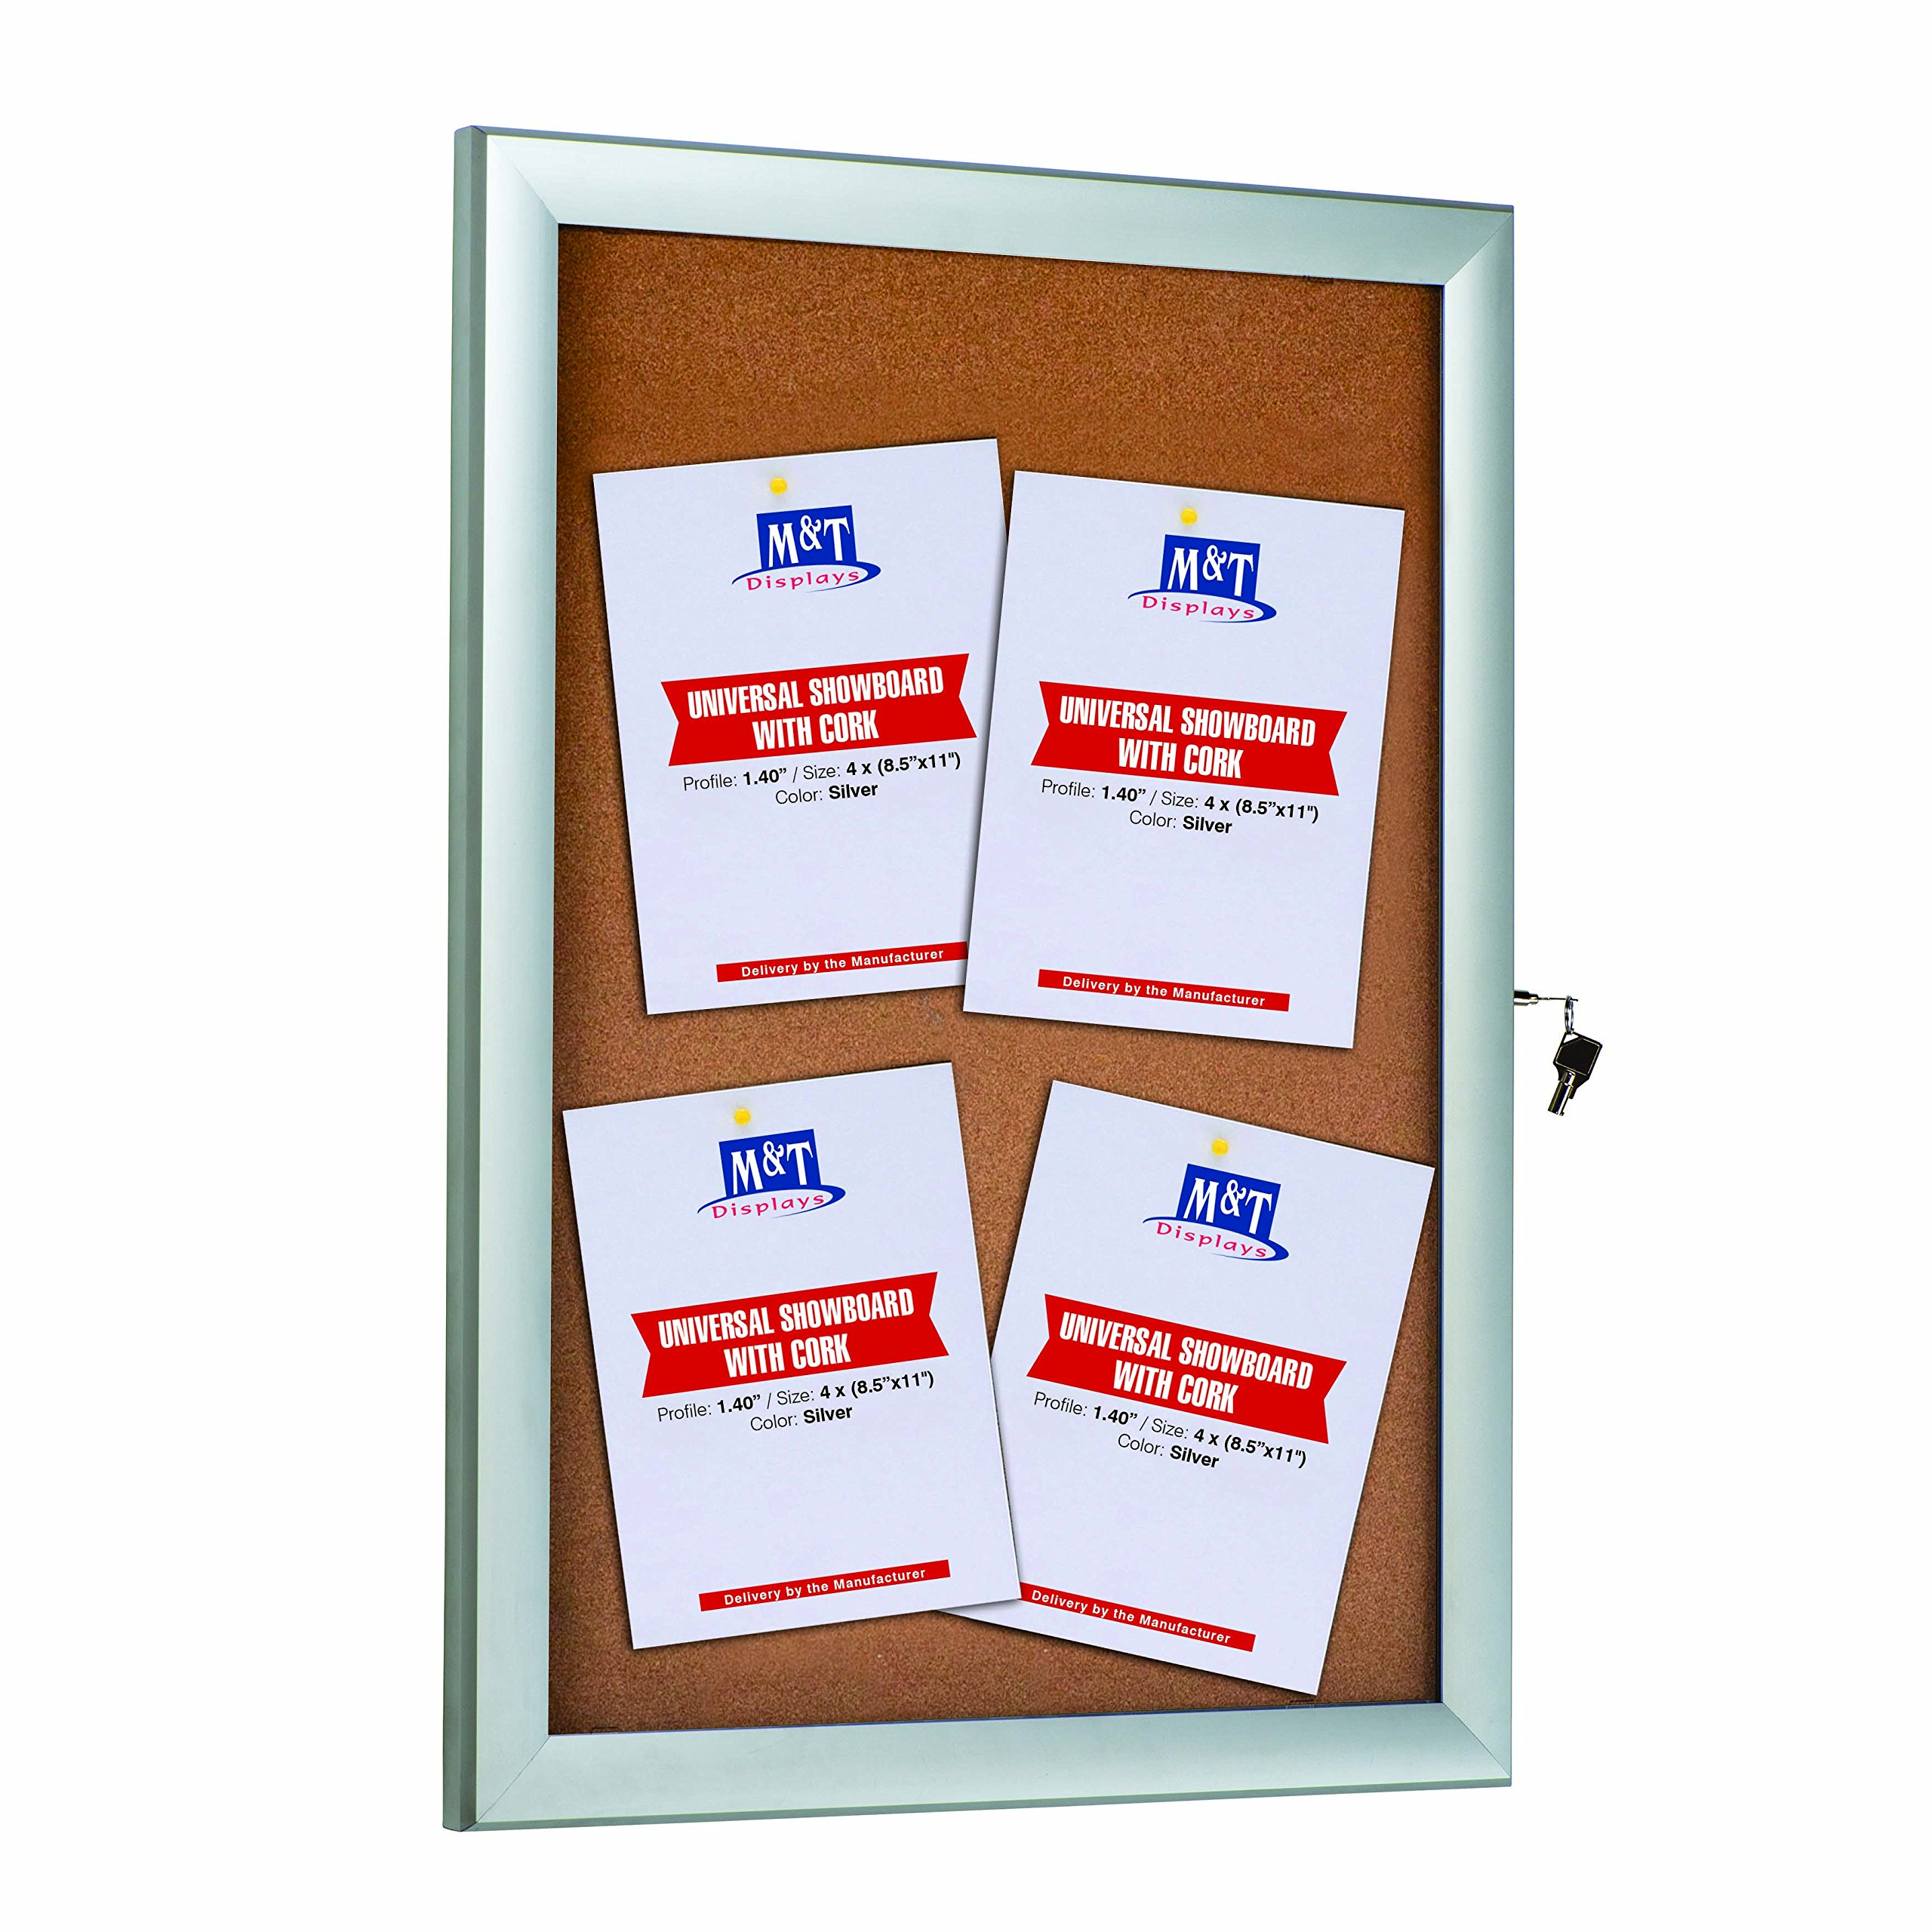 Enclosed Cork Bulletin Board for Outdoor Use with Locking Door 22x28, Silver, Weatherproof Noticeboard by Displays Market